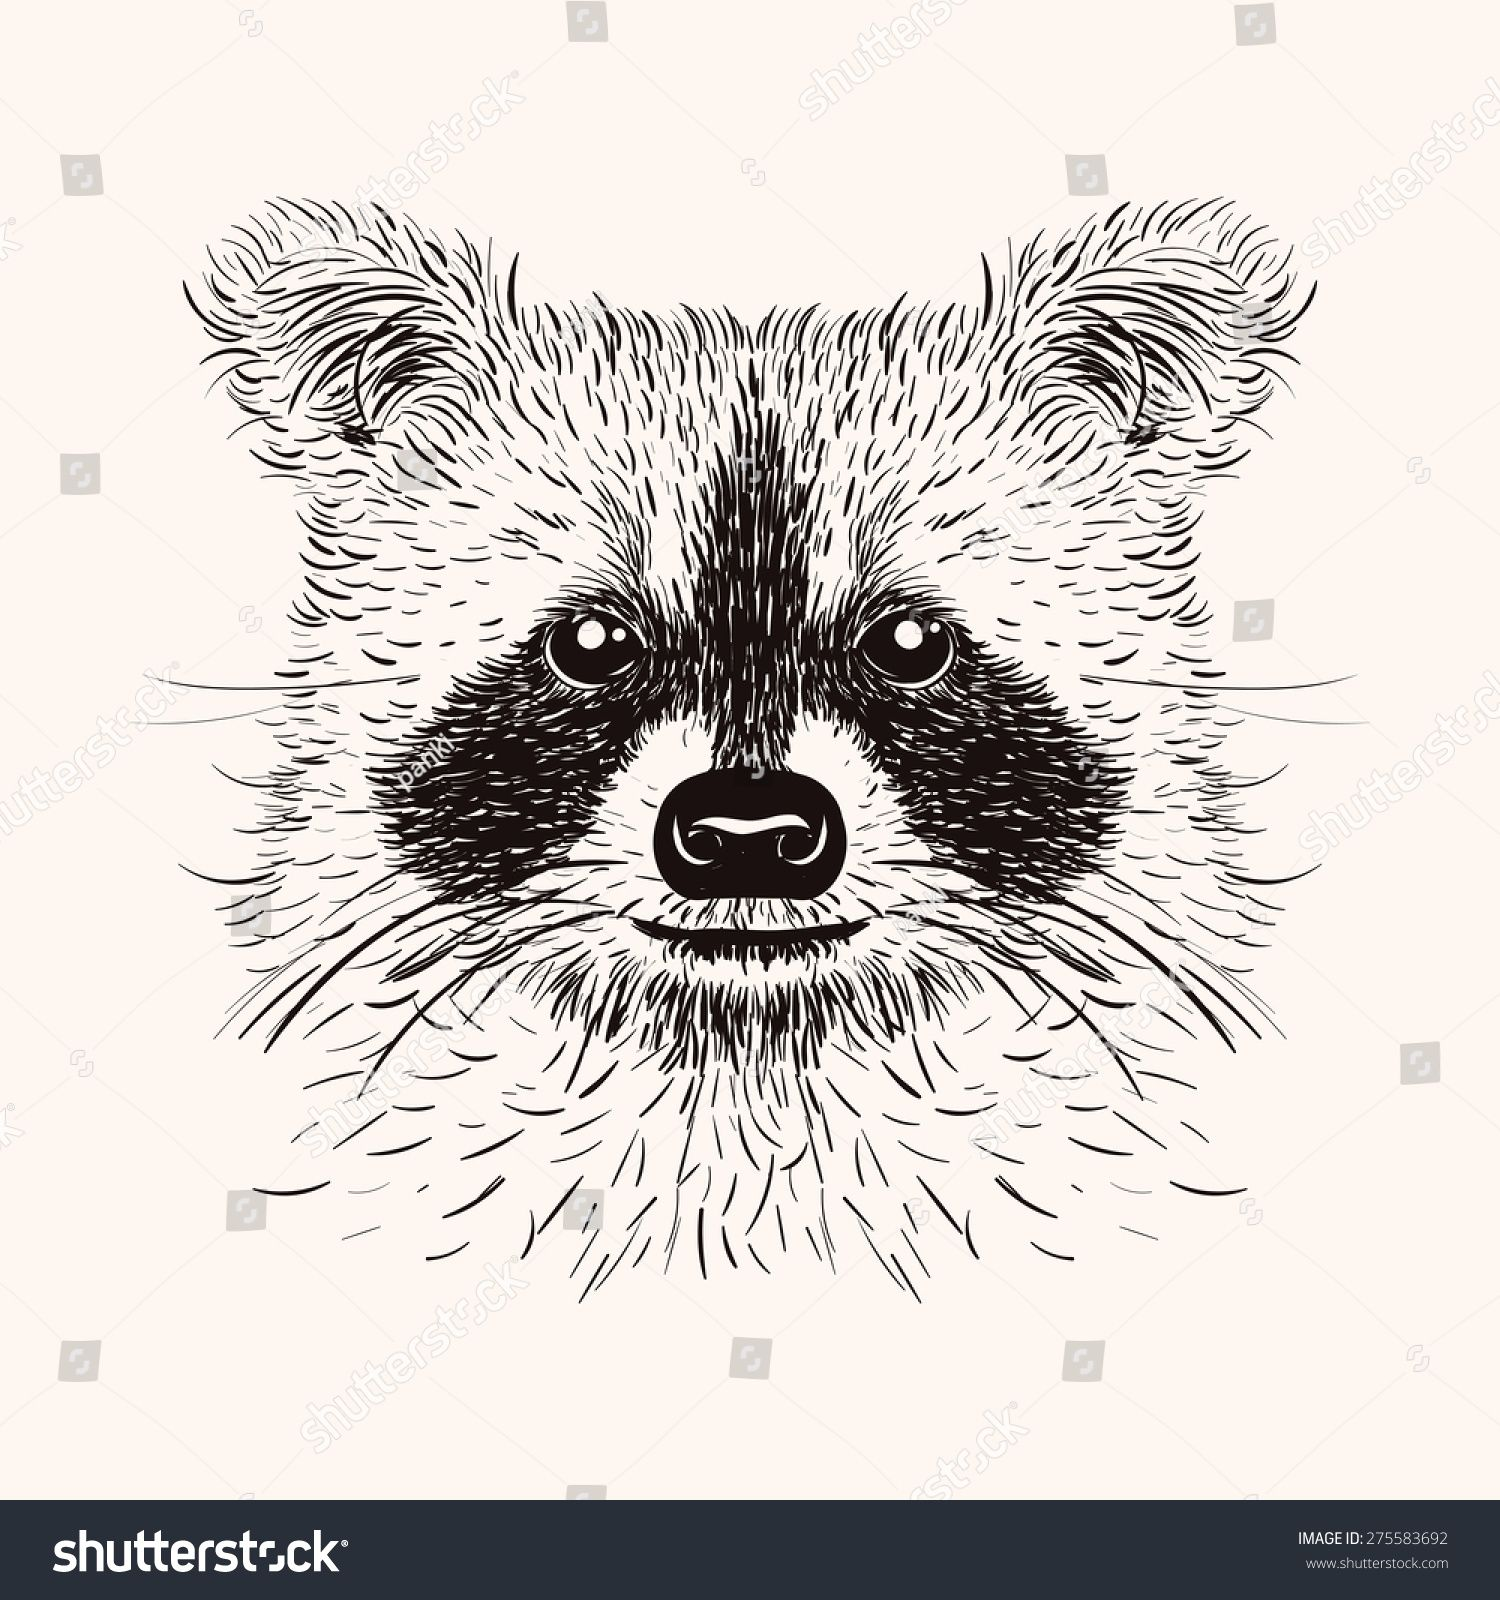 stock-photo-sketch-liner-raccoon-hand-drawn-illustration-in-doodle ...